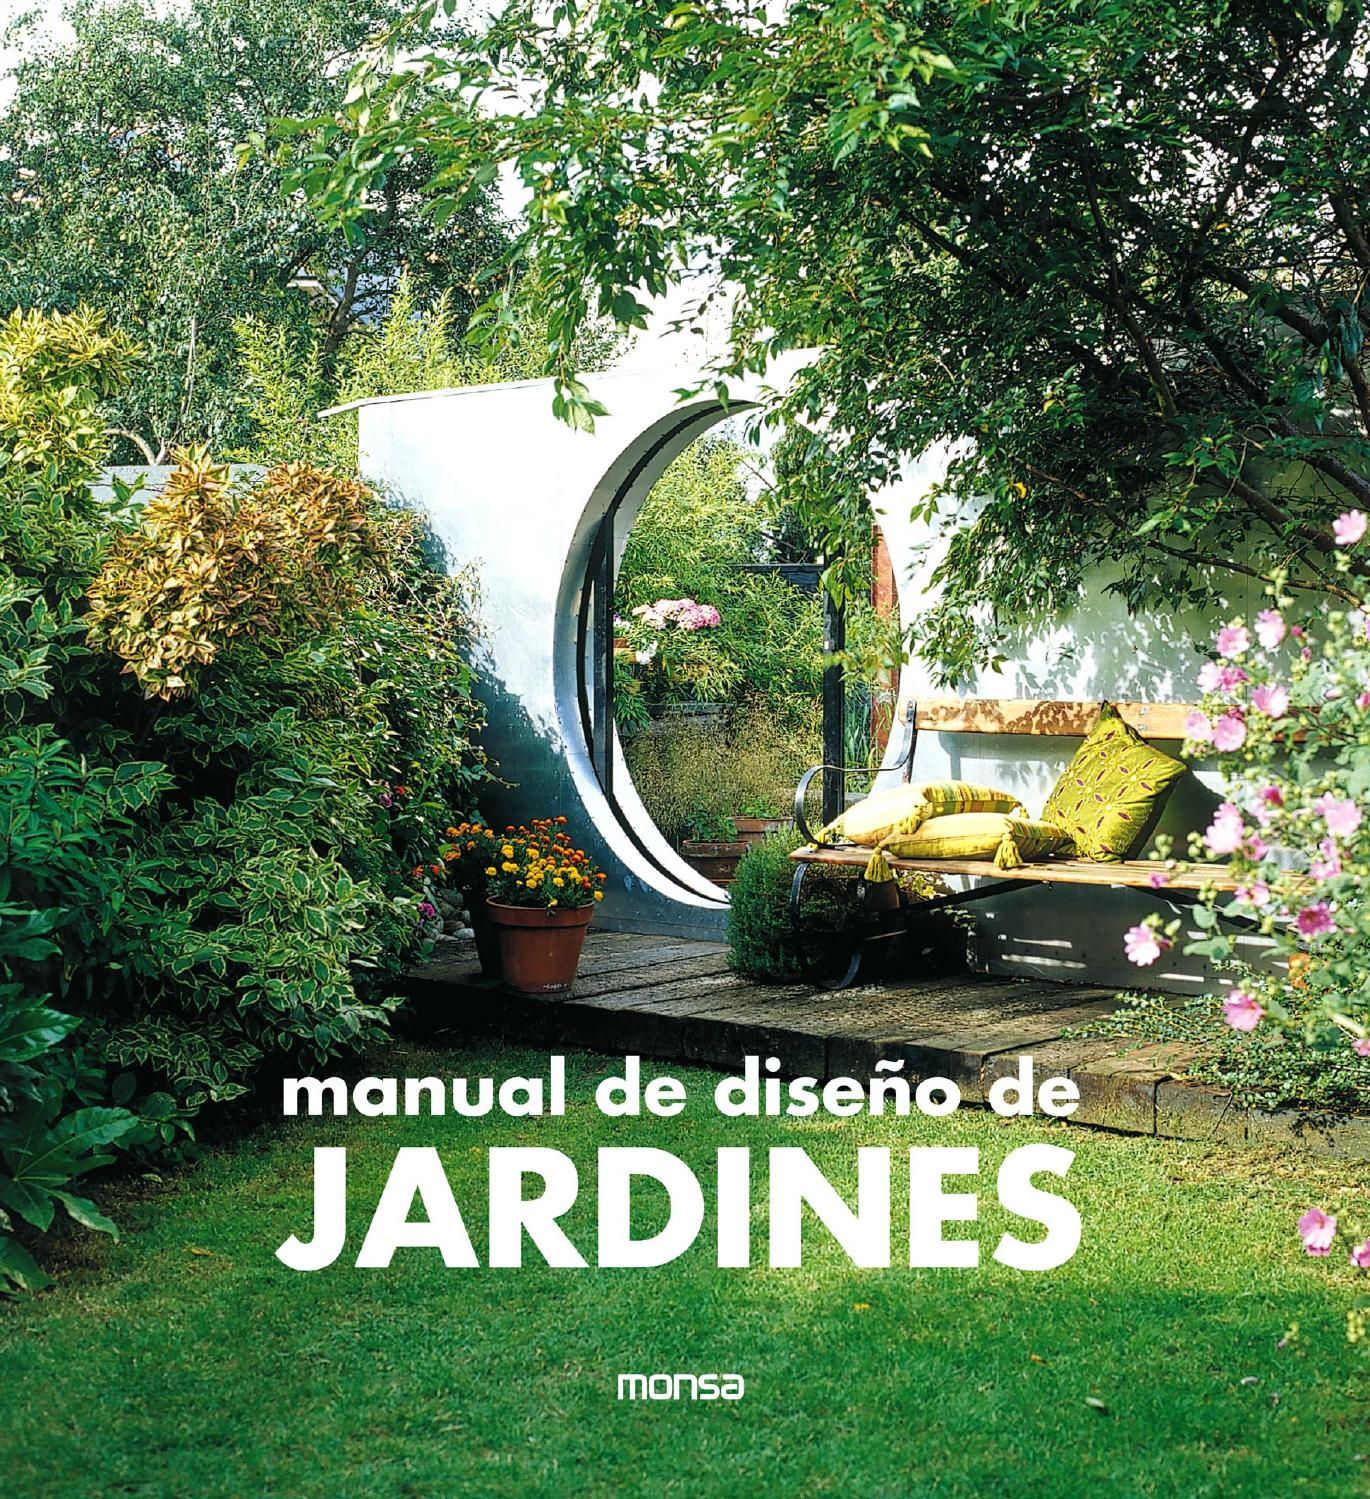 Manual de dise o de jardines by monsa publications issuu for Diseno de jardines y paisajismo